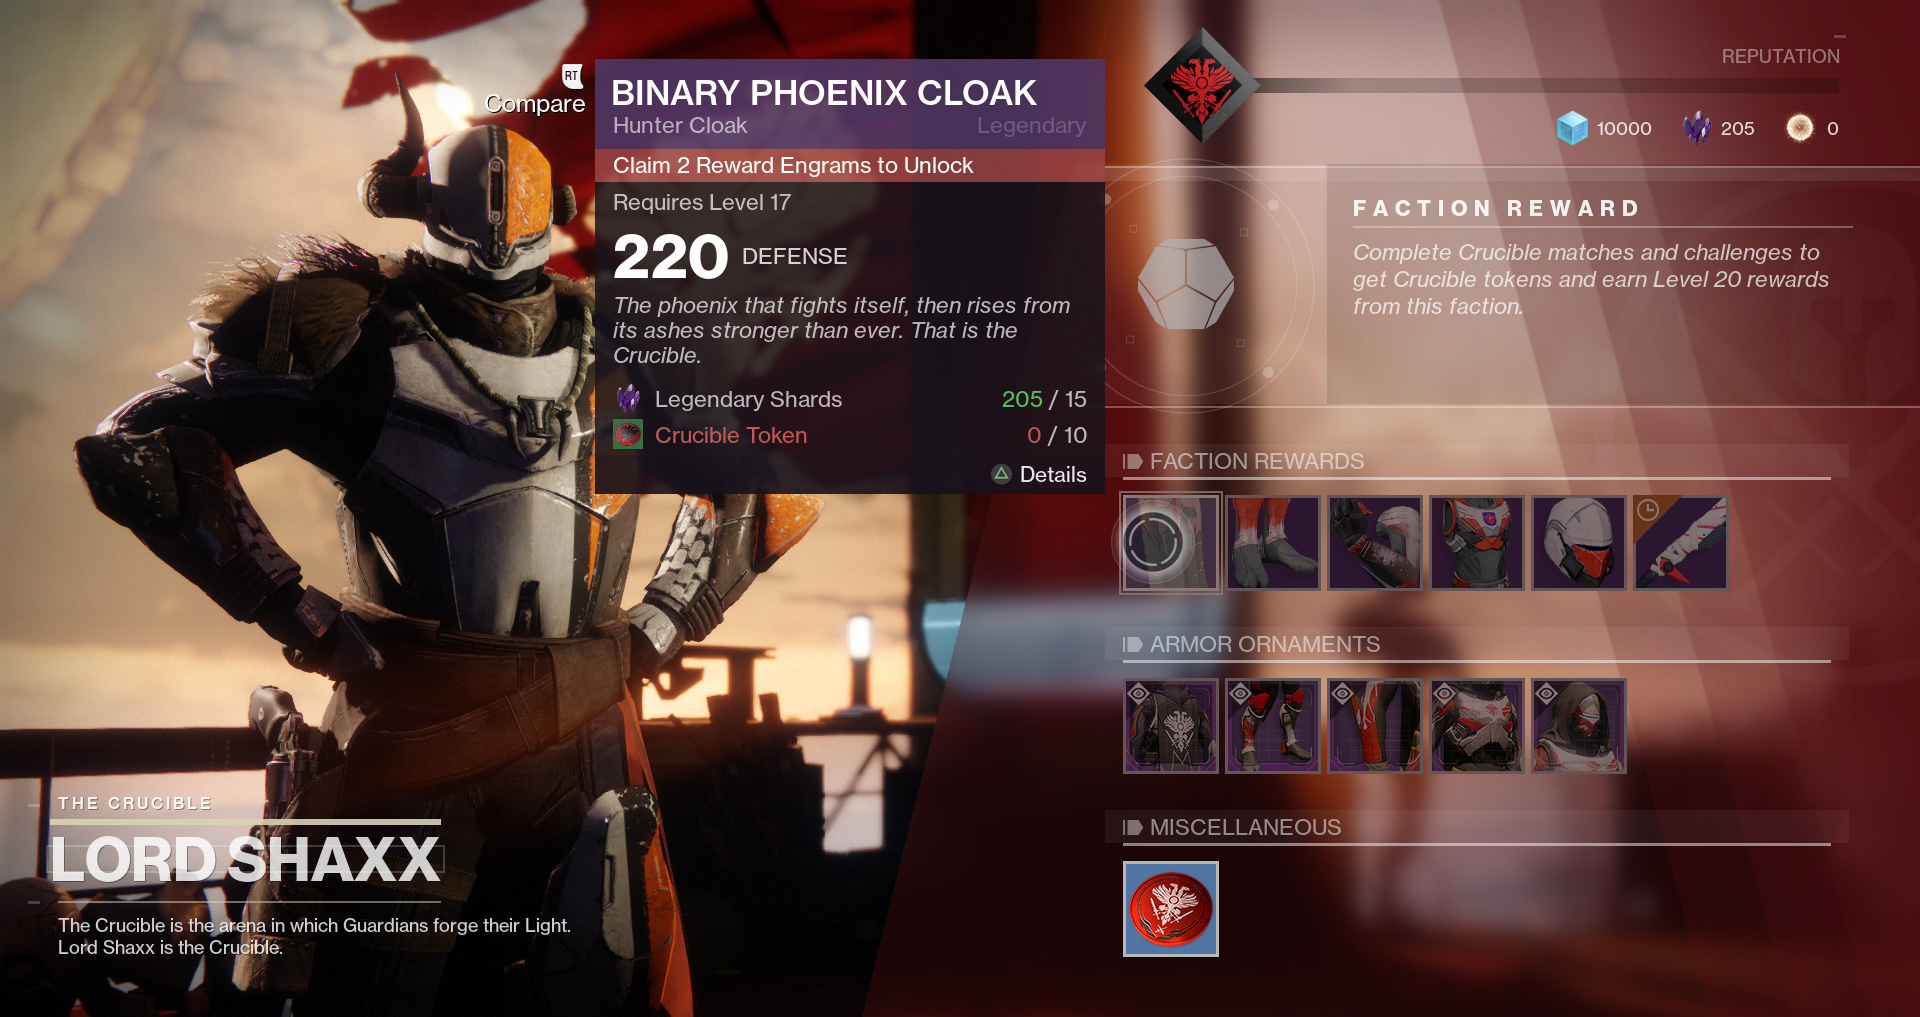 Destiny 2 - Lord Shaxx's inventory of Crucible weapons and armor